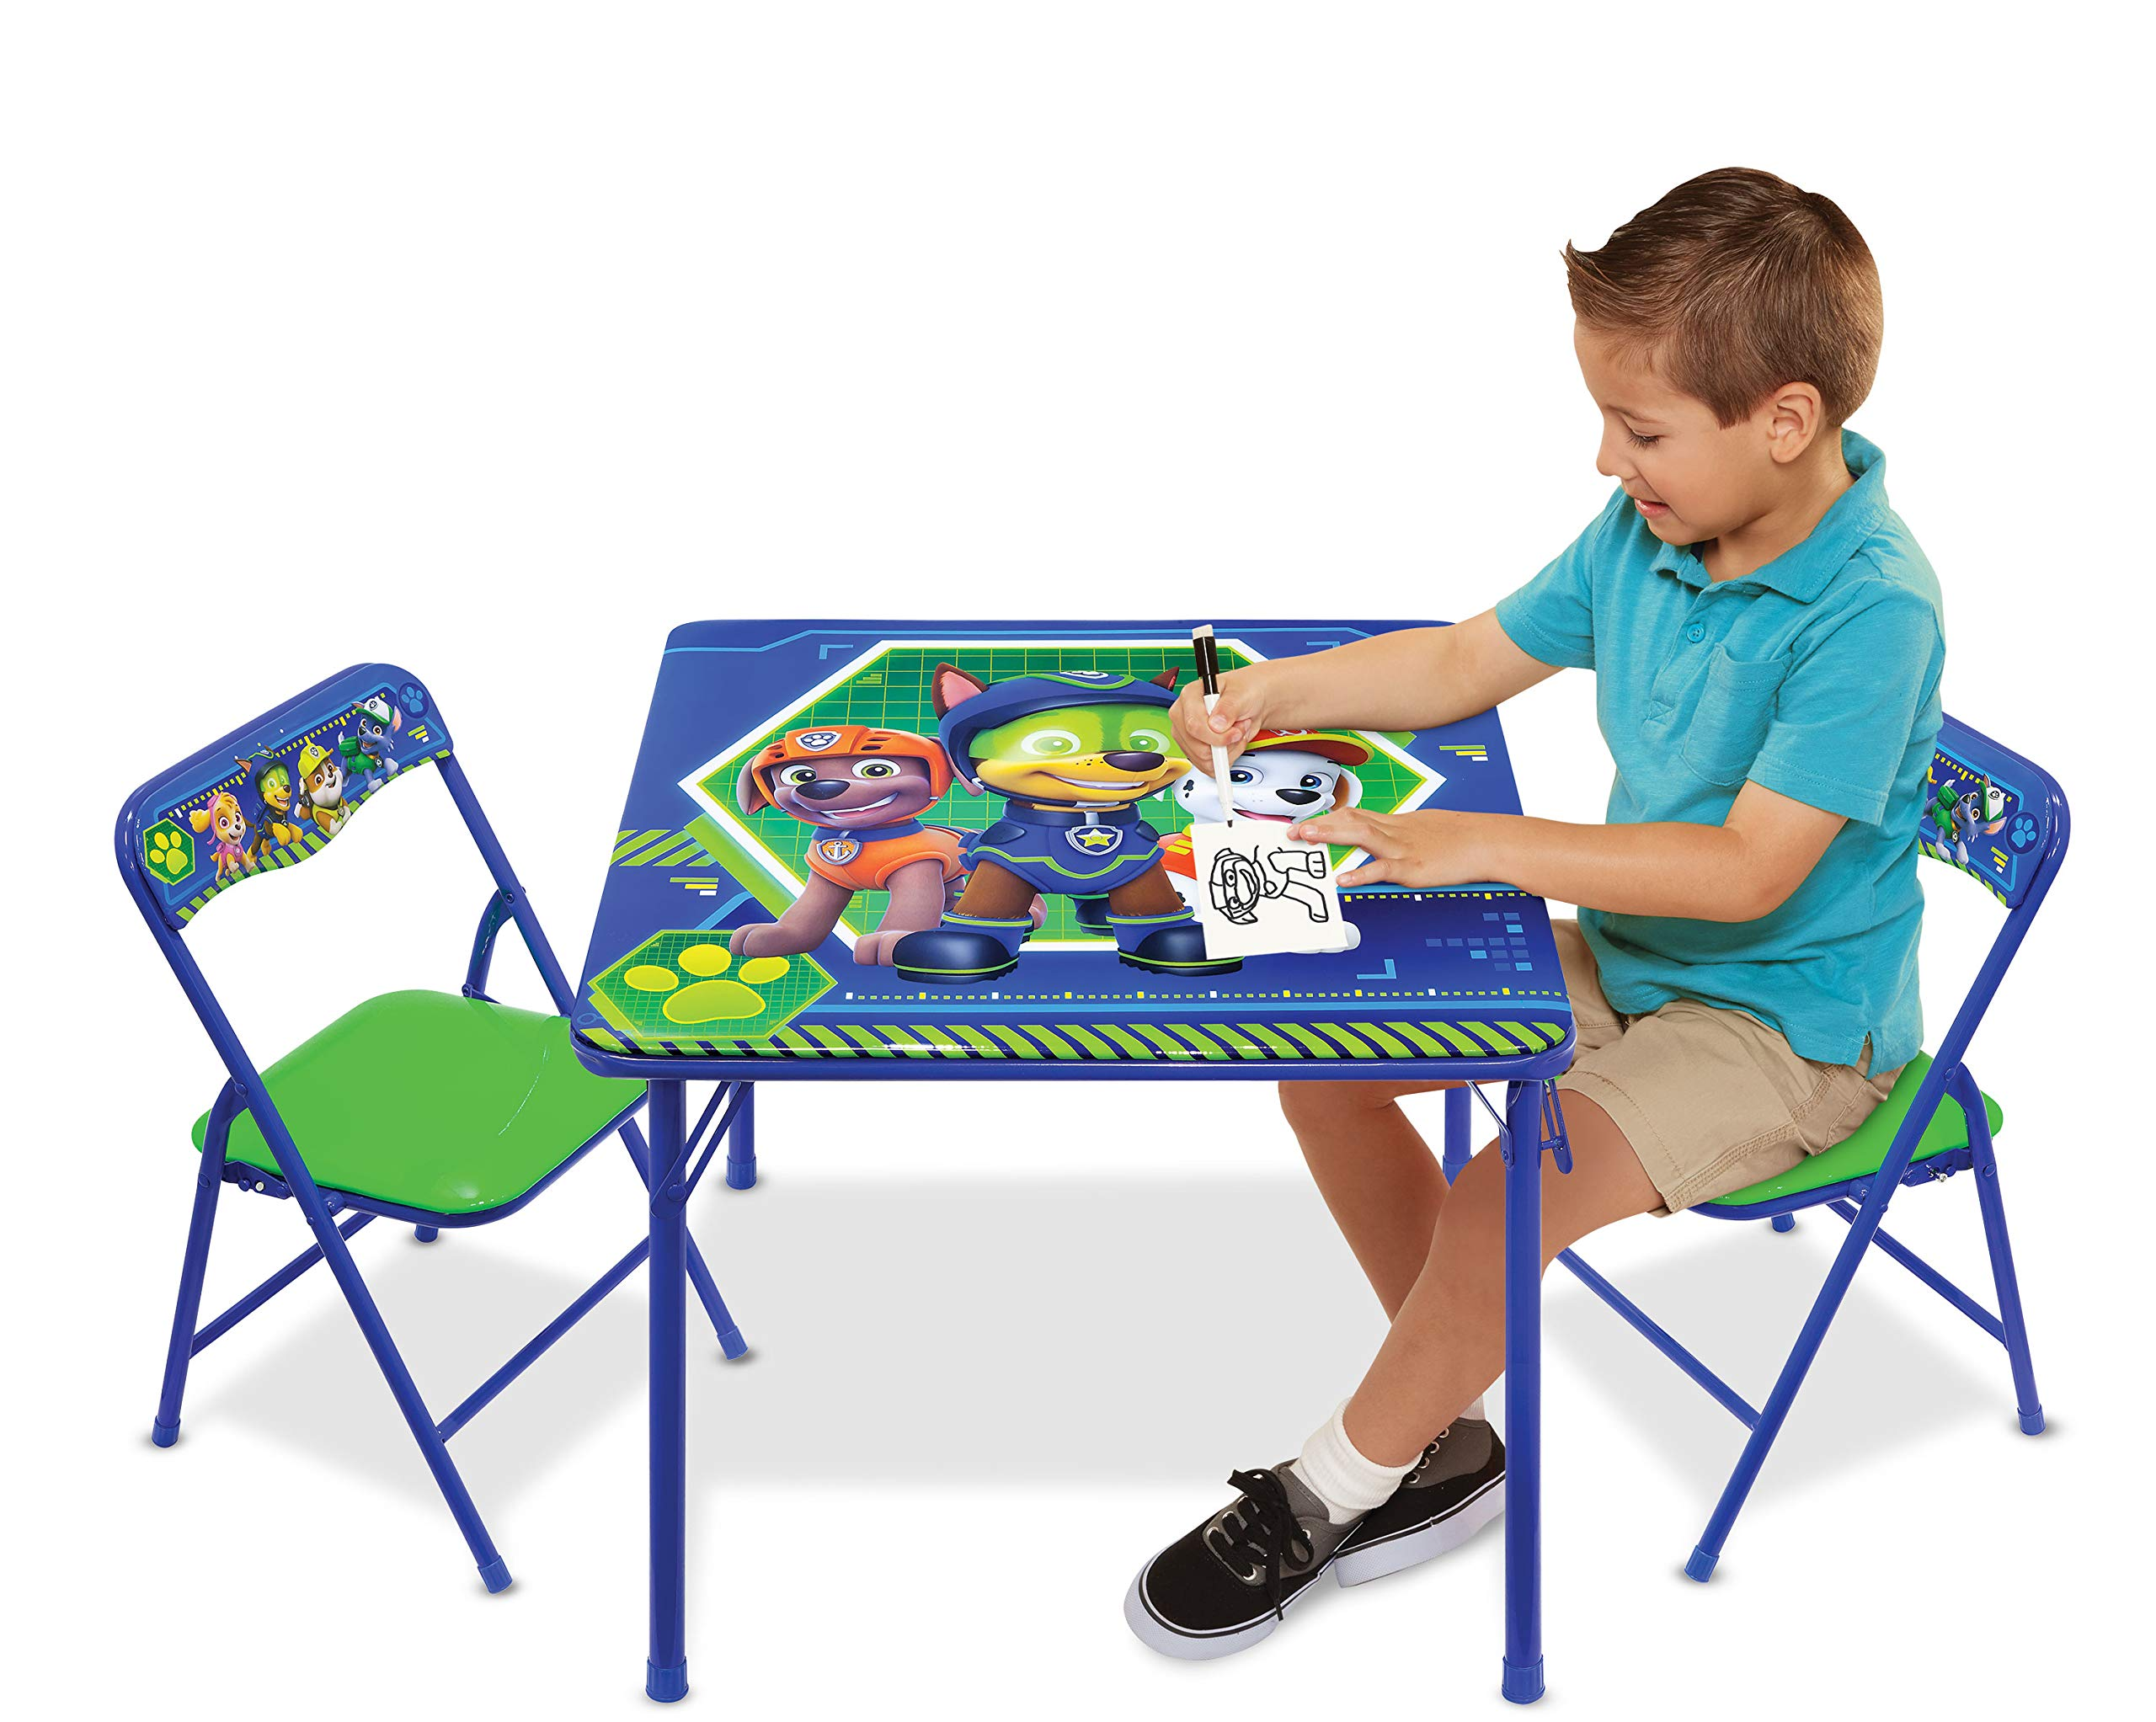 Nickelodeon Patrol Activity Chairs Blue Green